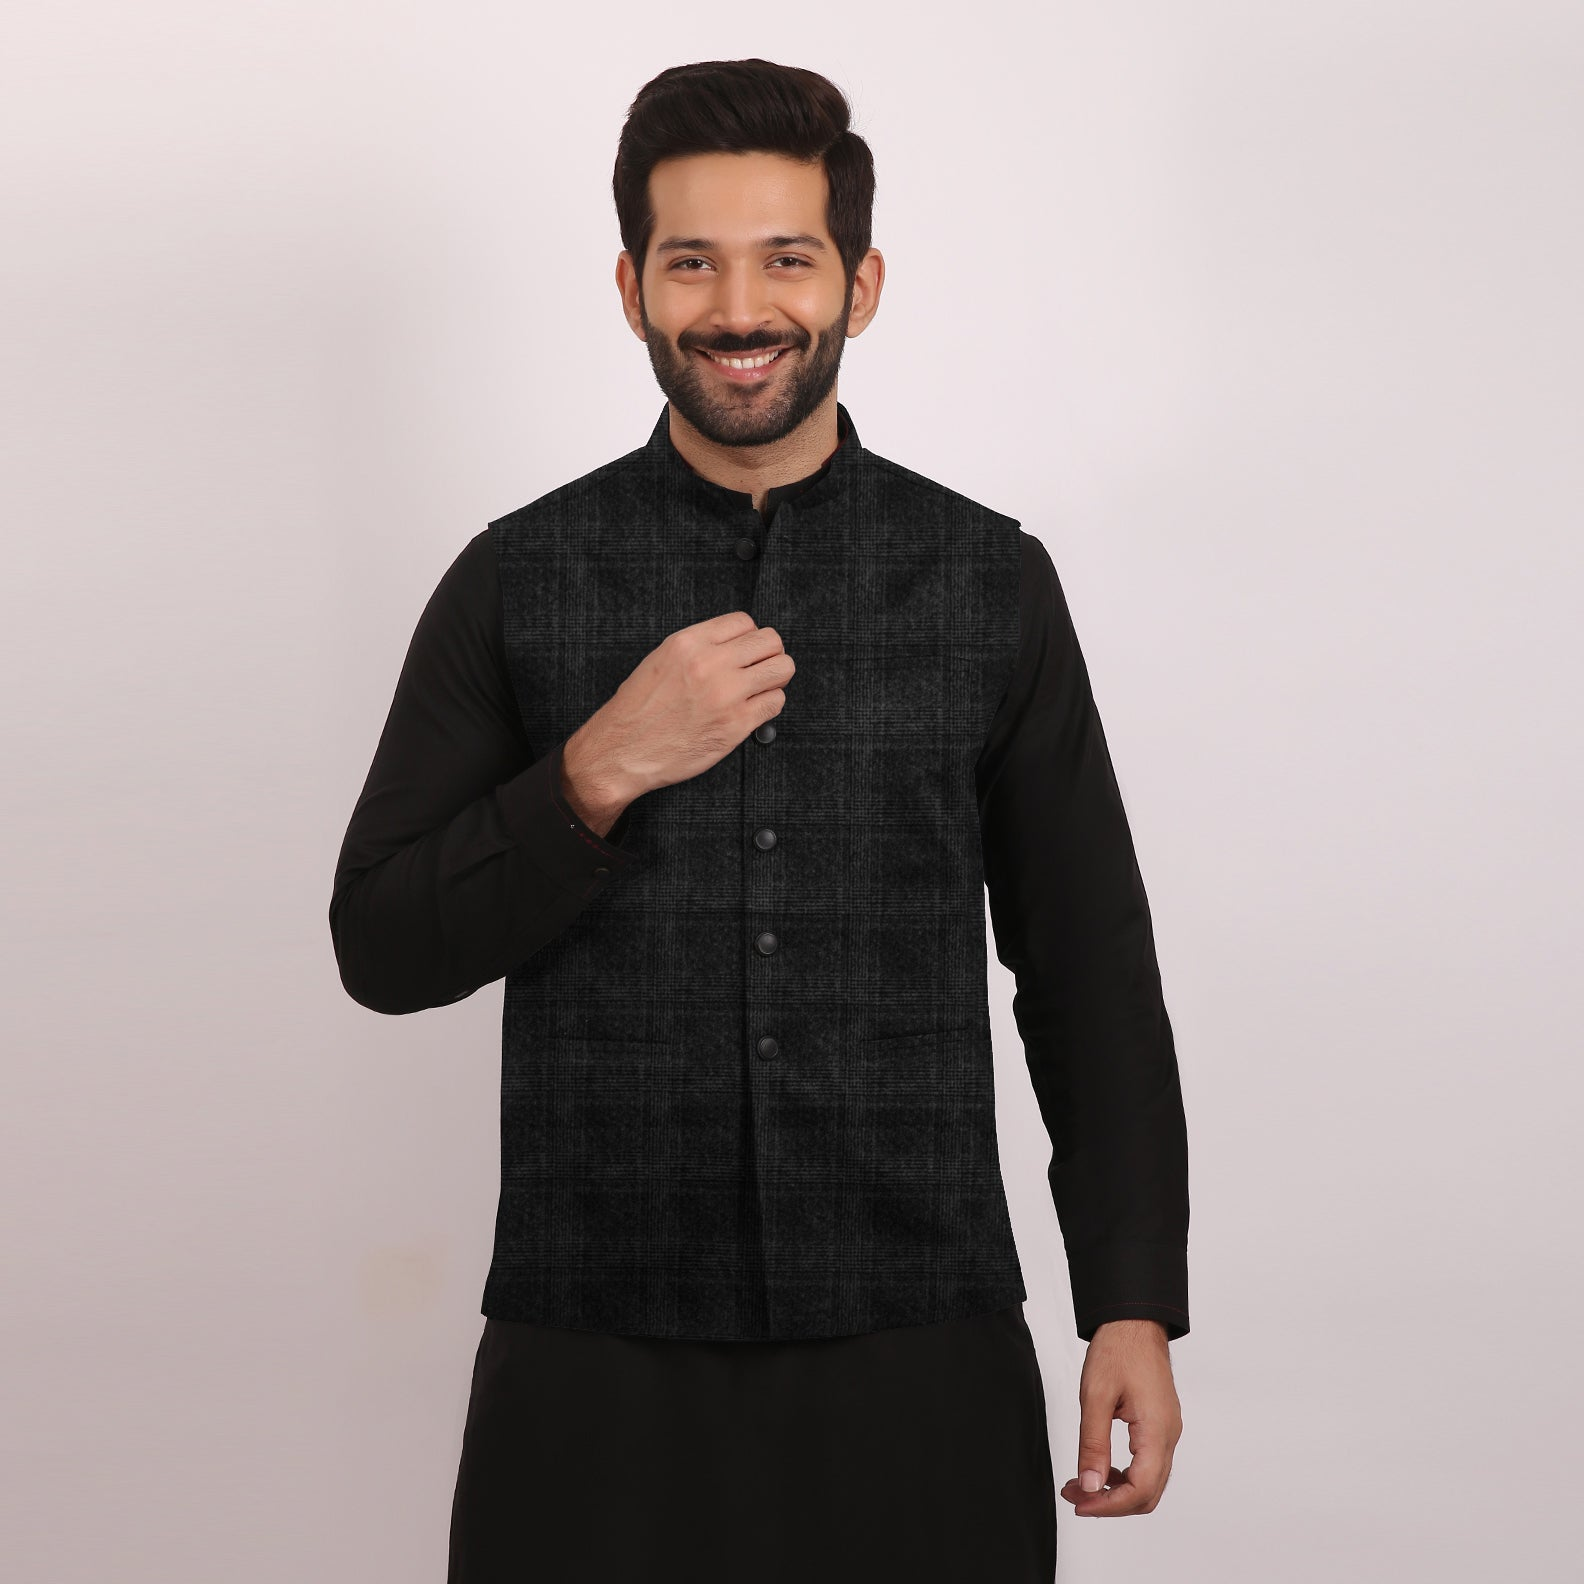 ZM Premium Waistcoat For Men-Charcoal With Pattern-NA12061